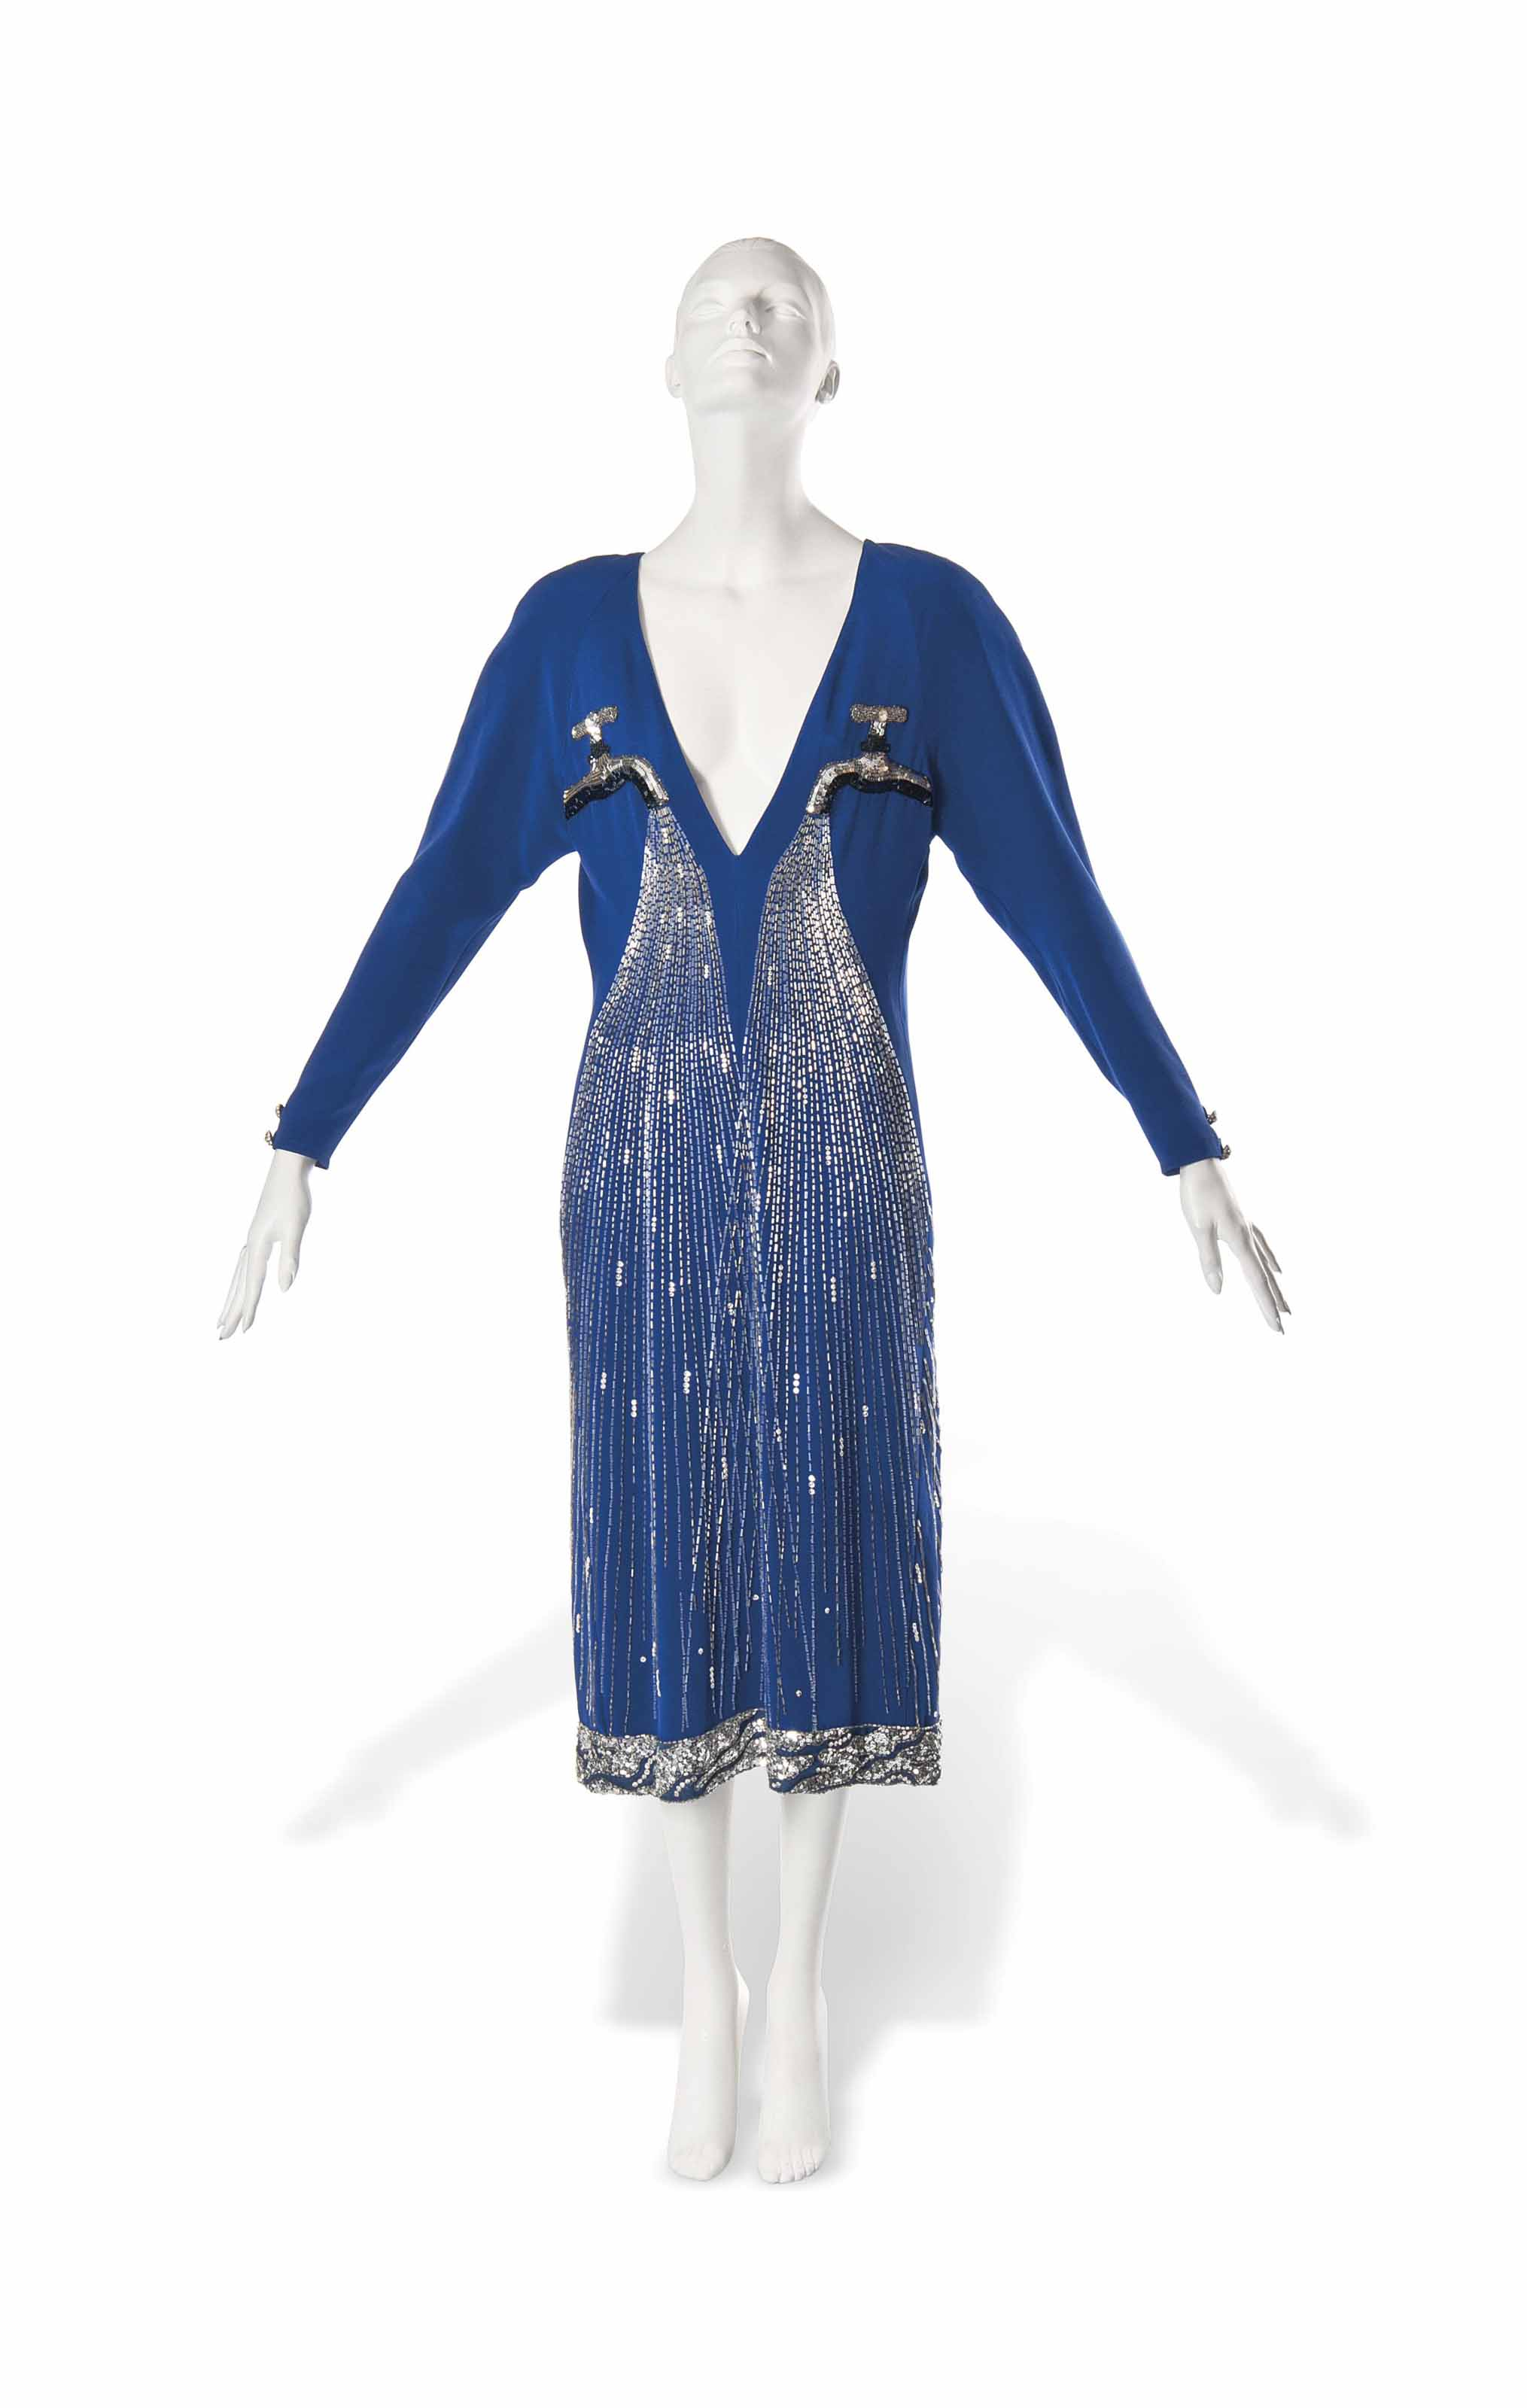 2012_CSK_07859_0012_000(a_karl_lagerfeld_for_chloe_royal_blue_satin_dress_unlabelled_autumn_wi).jpg